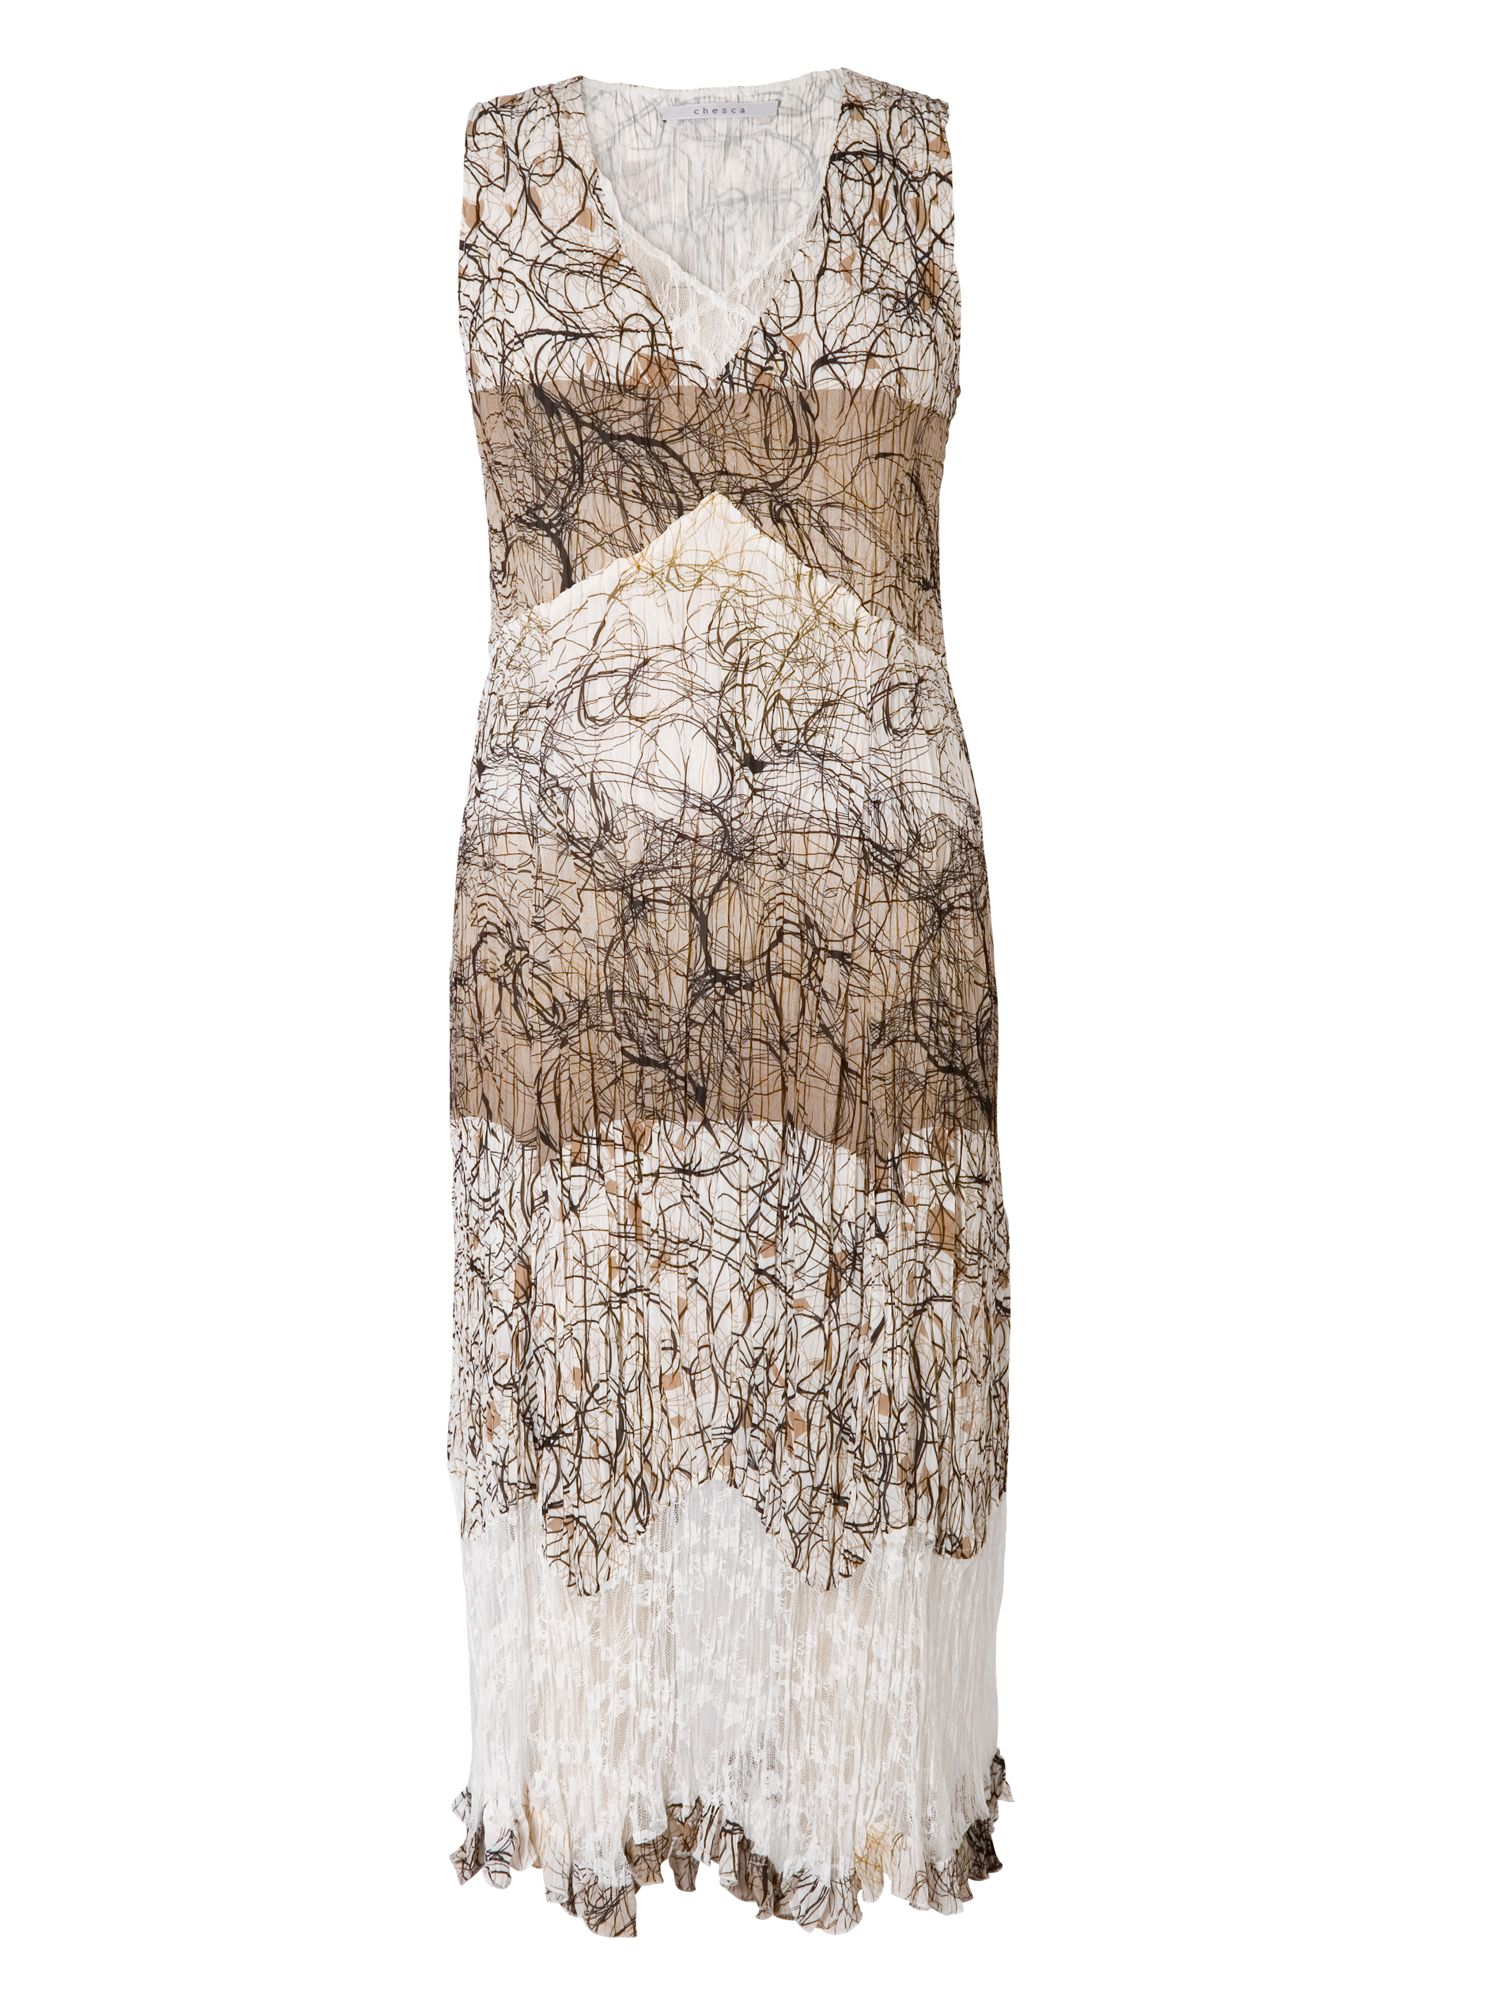 Chesca Scribble Print Dress With Lace Trim, White